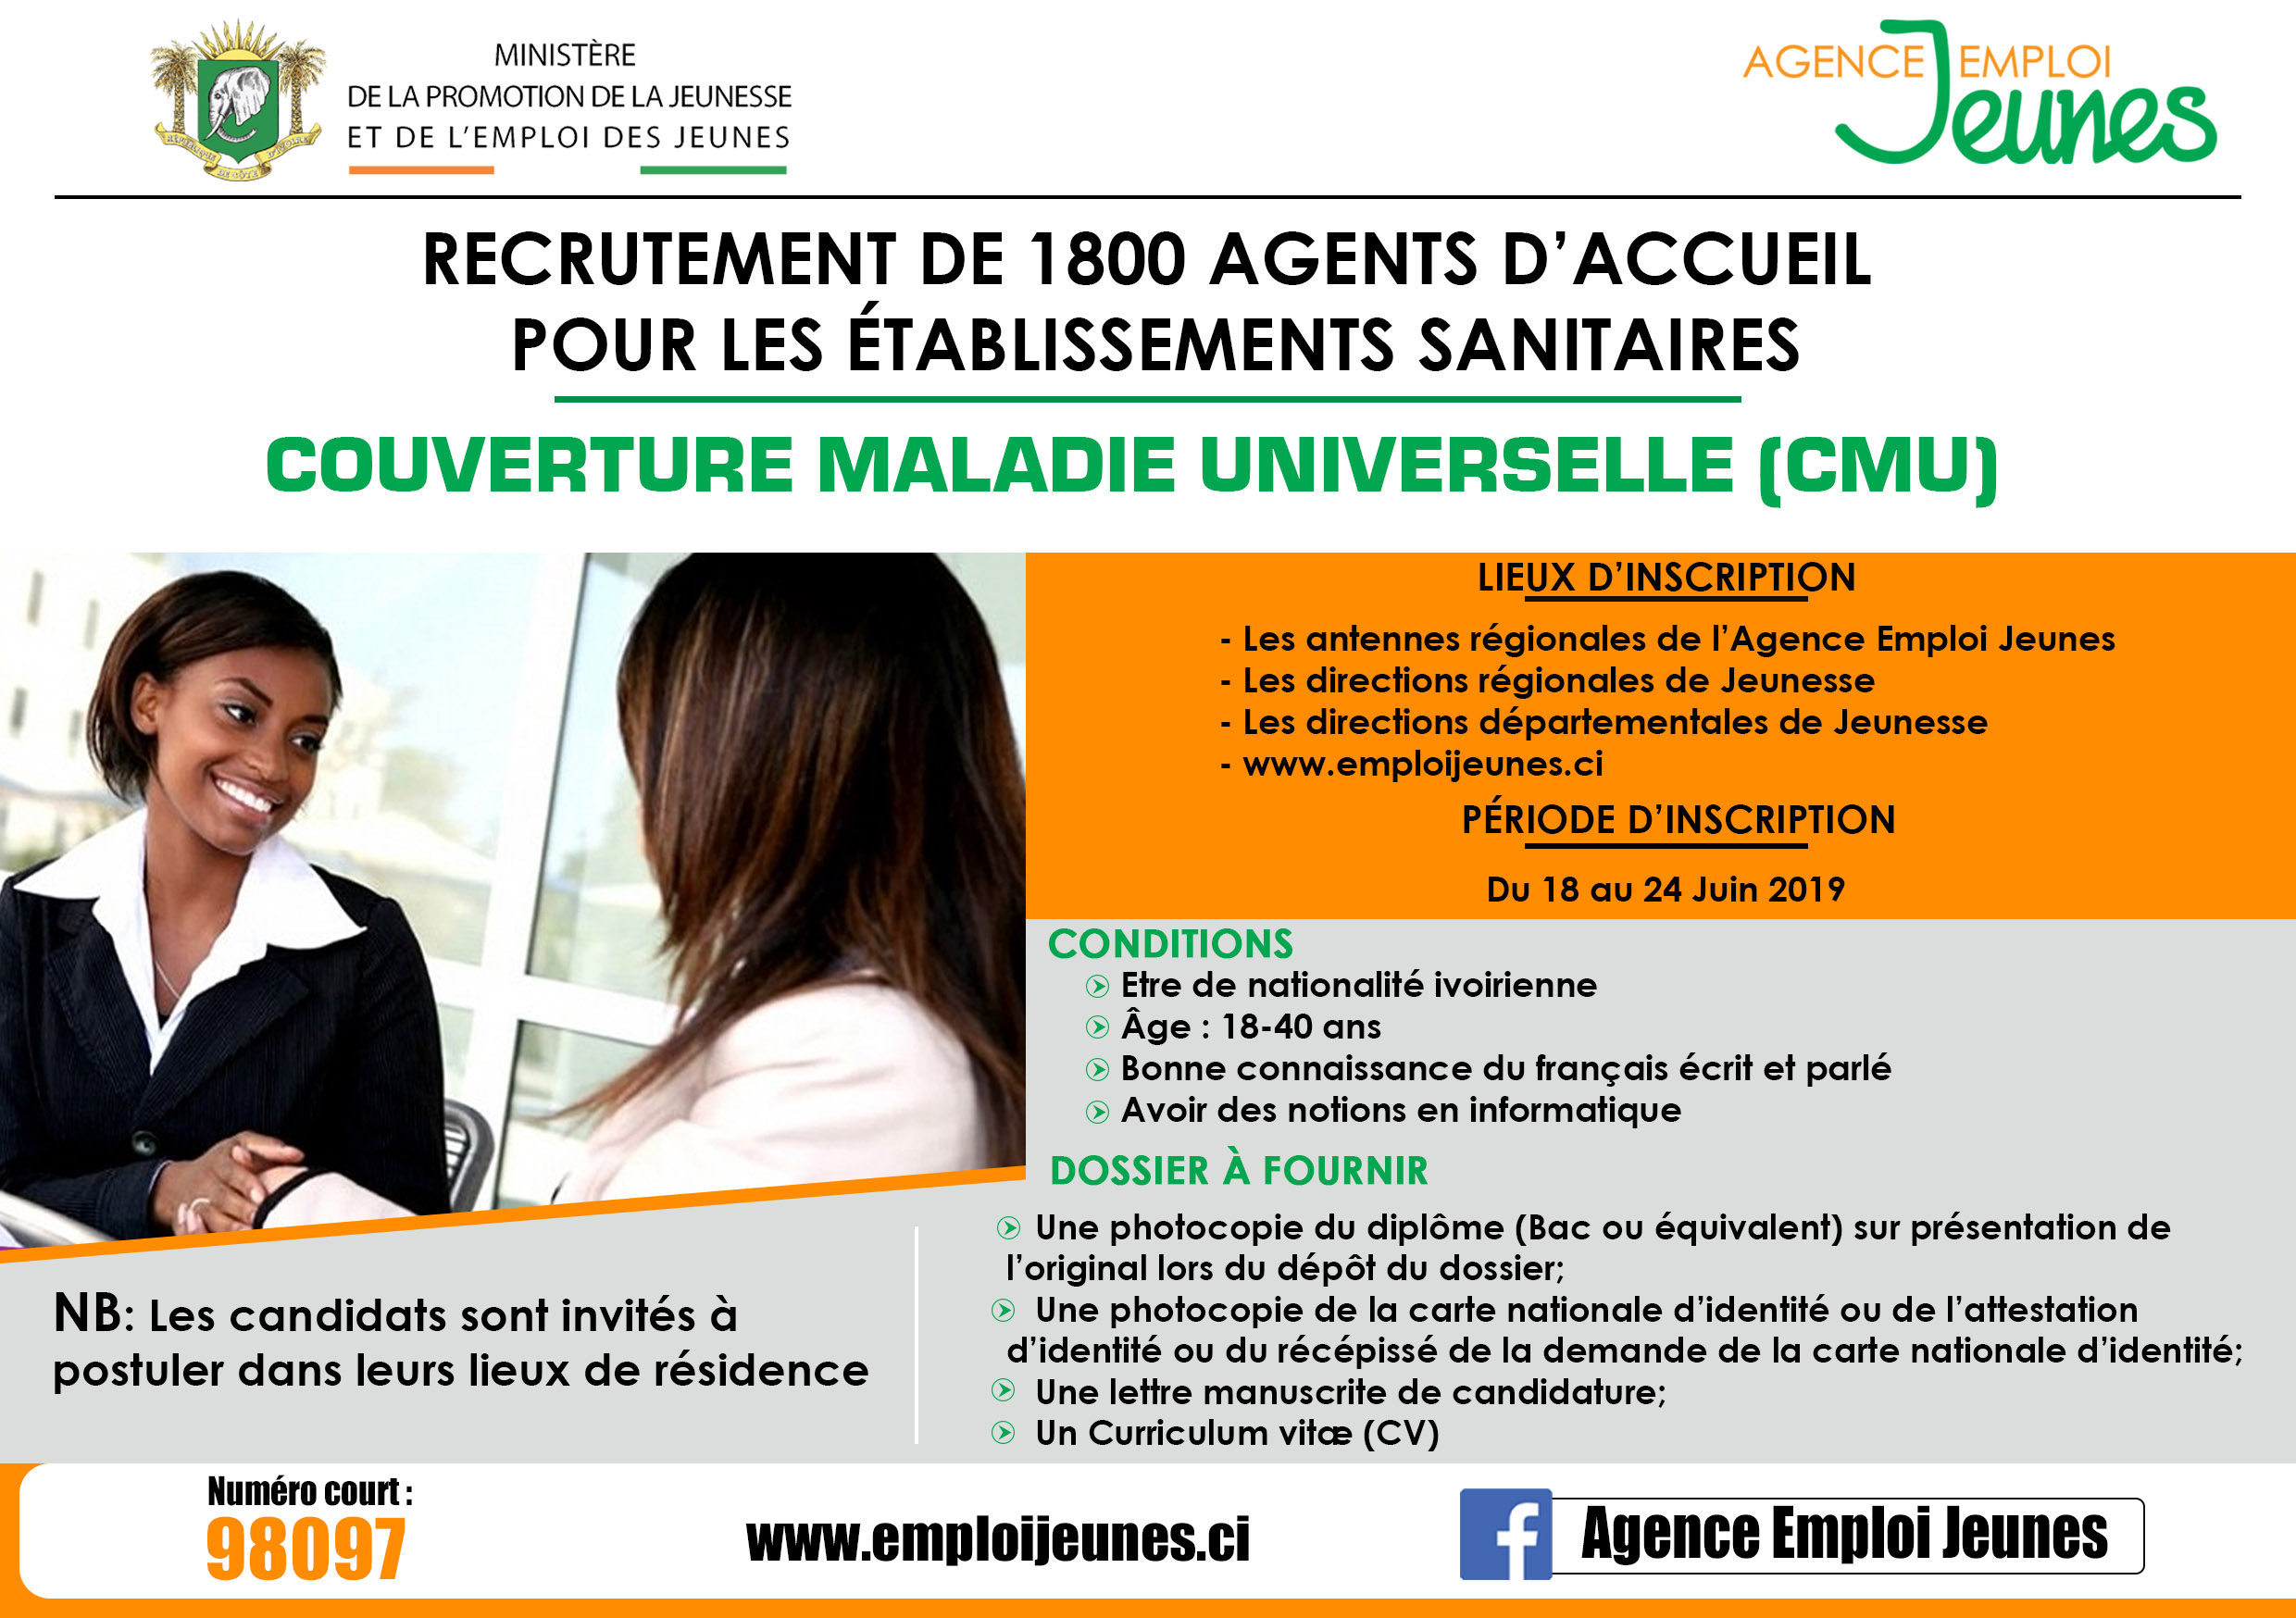 Couverture maladie universelle,Agence Emploi jeune,rfecrutement